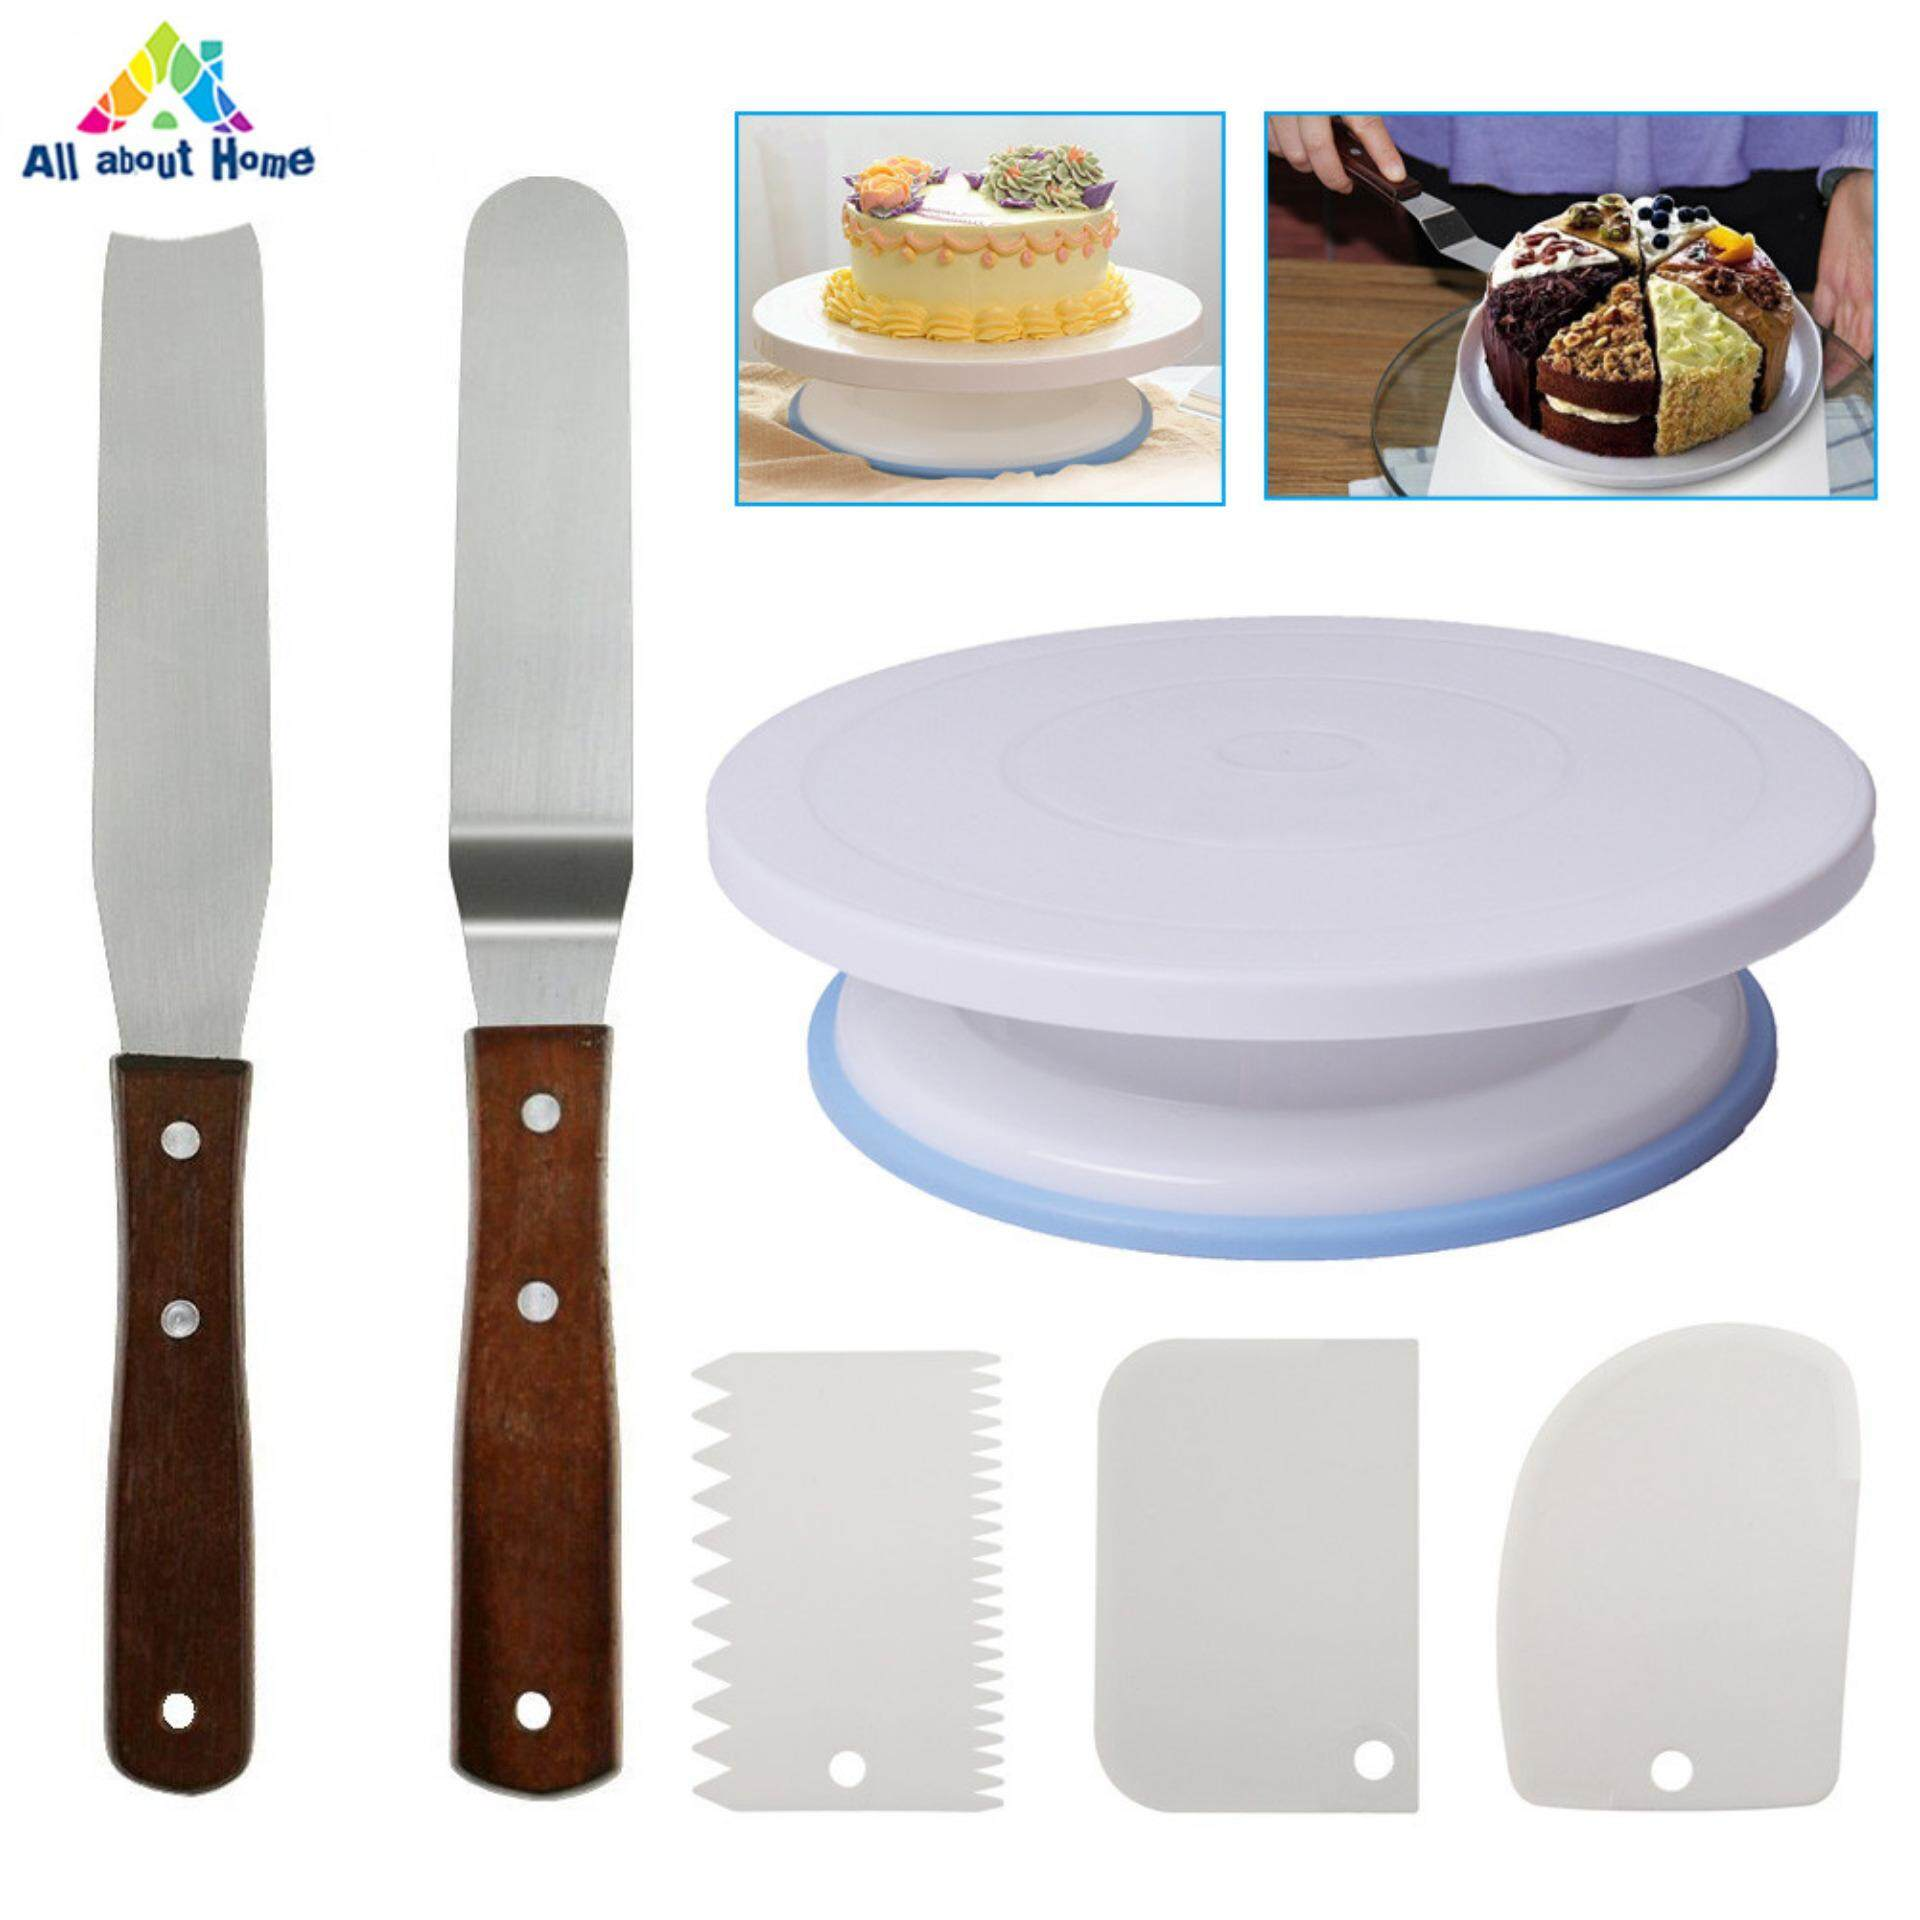 Home Baking Tools Accessories Buy Pisau Set White Swan 1 Turntable Rotating Cake Stand With Smoother Icing Spatula